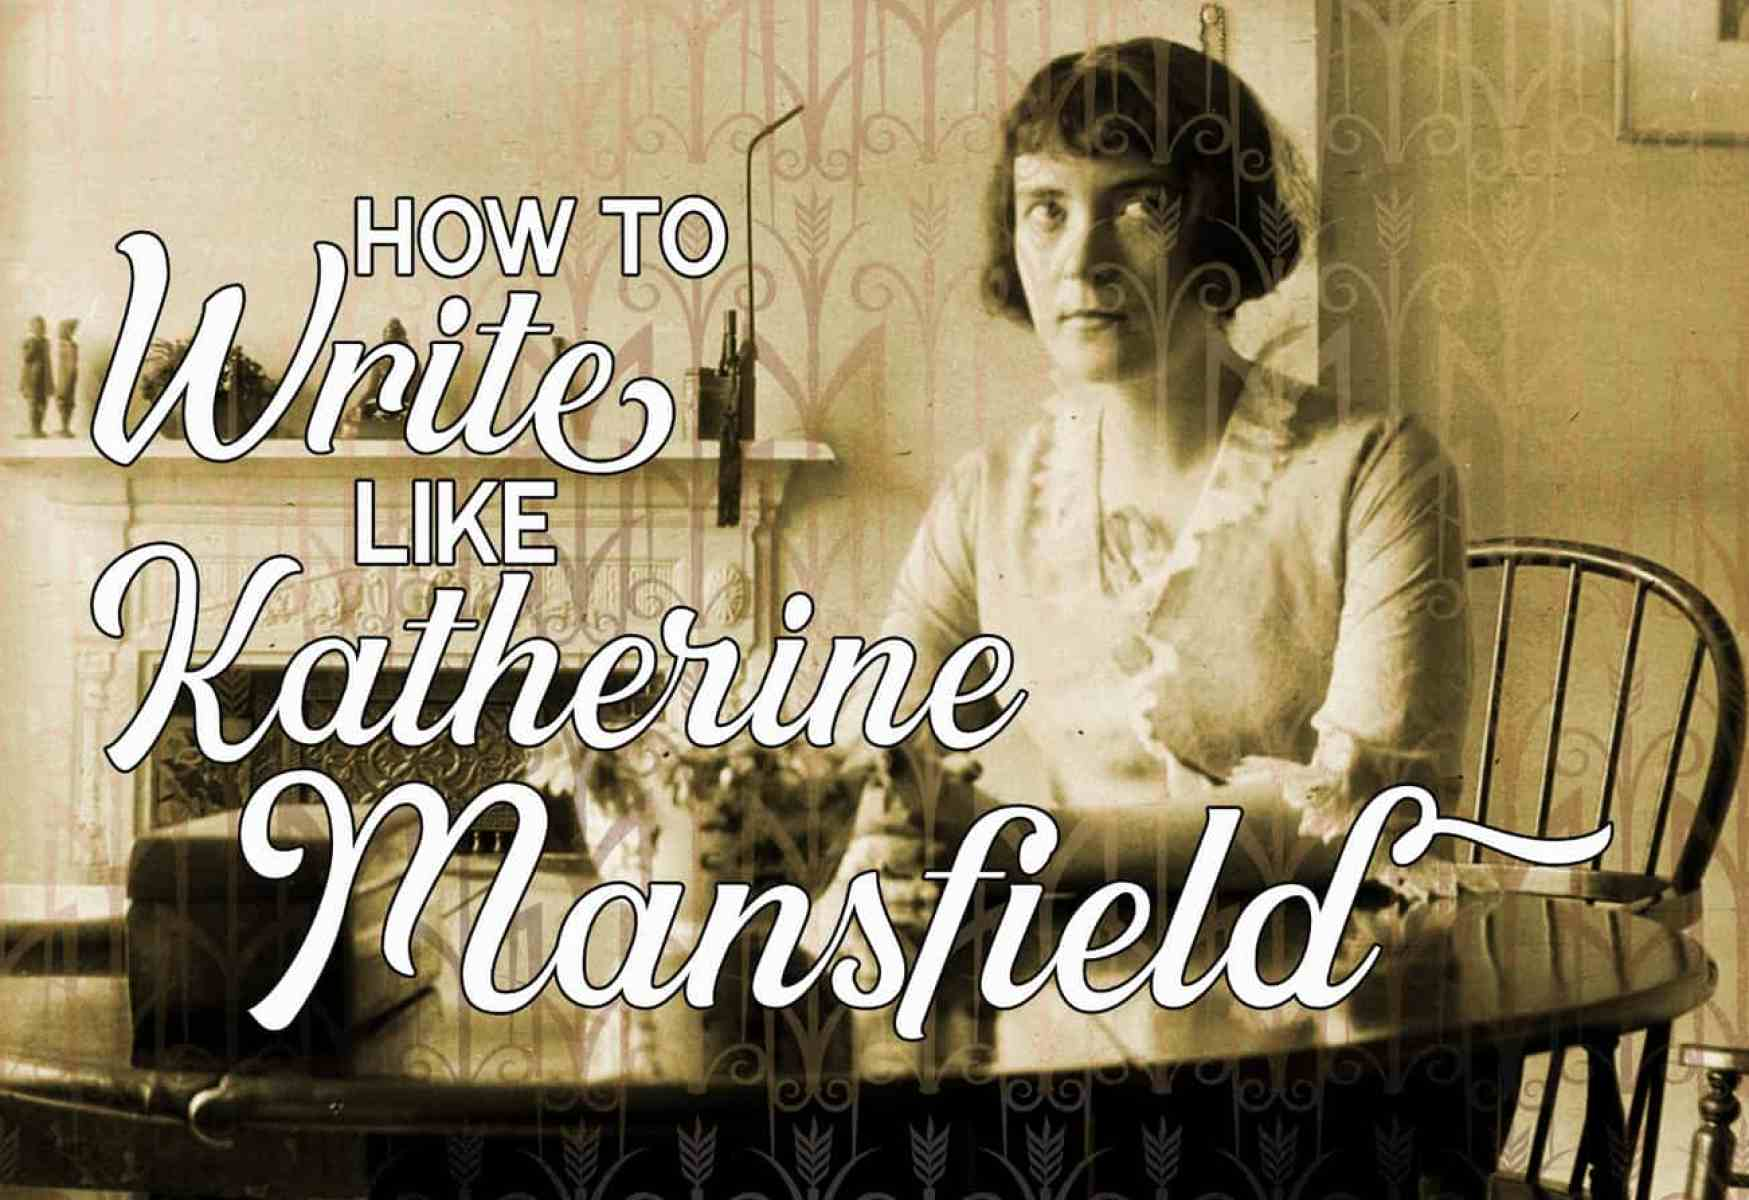 How To Write Like Katherine Mansfield